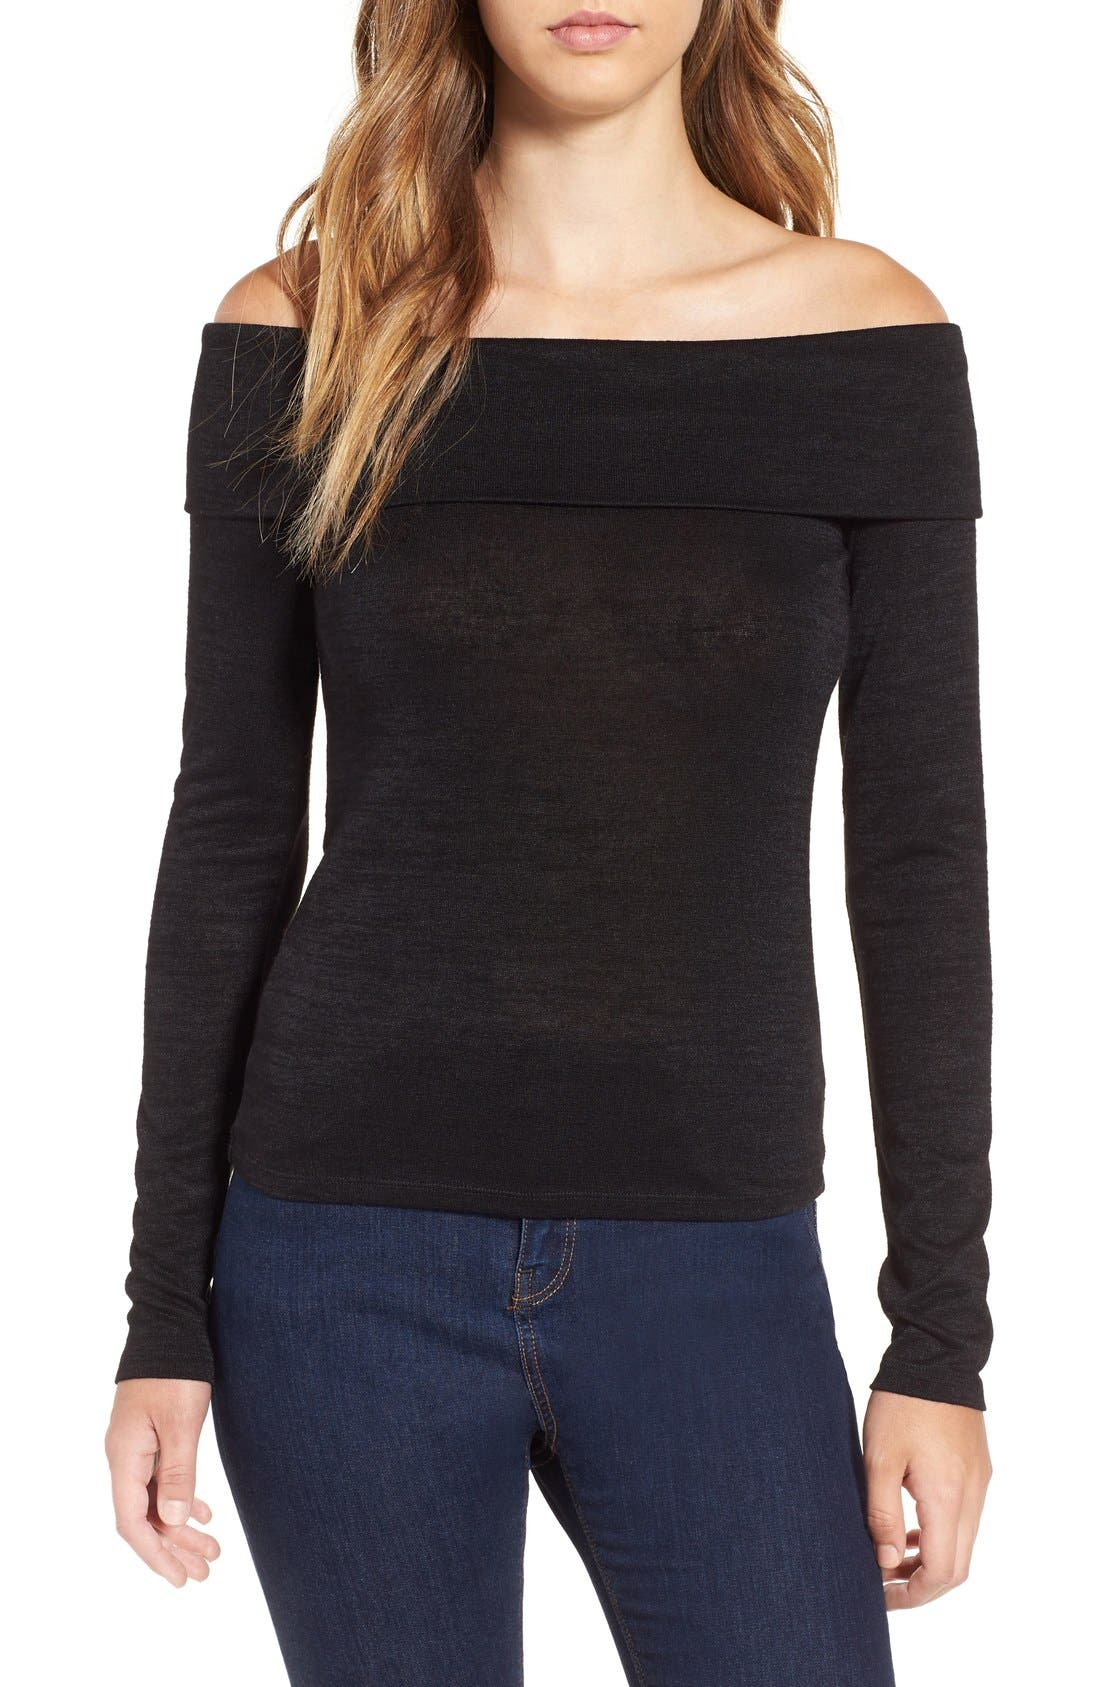 LEITH,                             Foldover Off the Shoulder Top,                             Main thumbnail 1, color,                             001